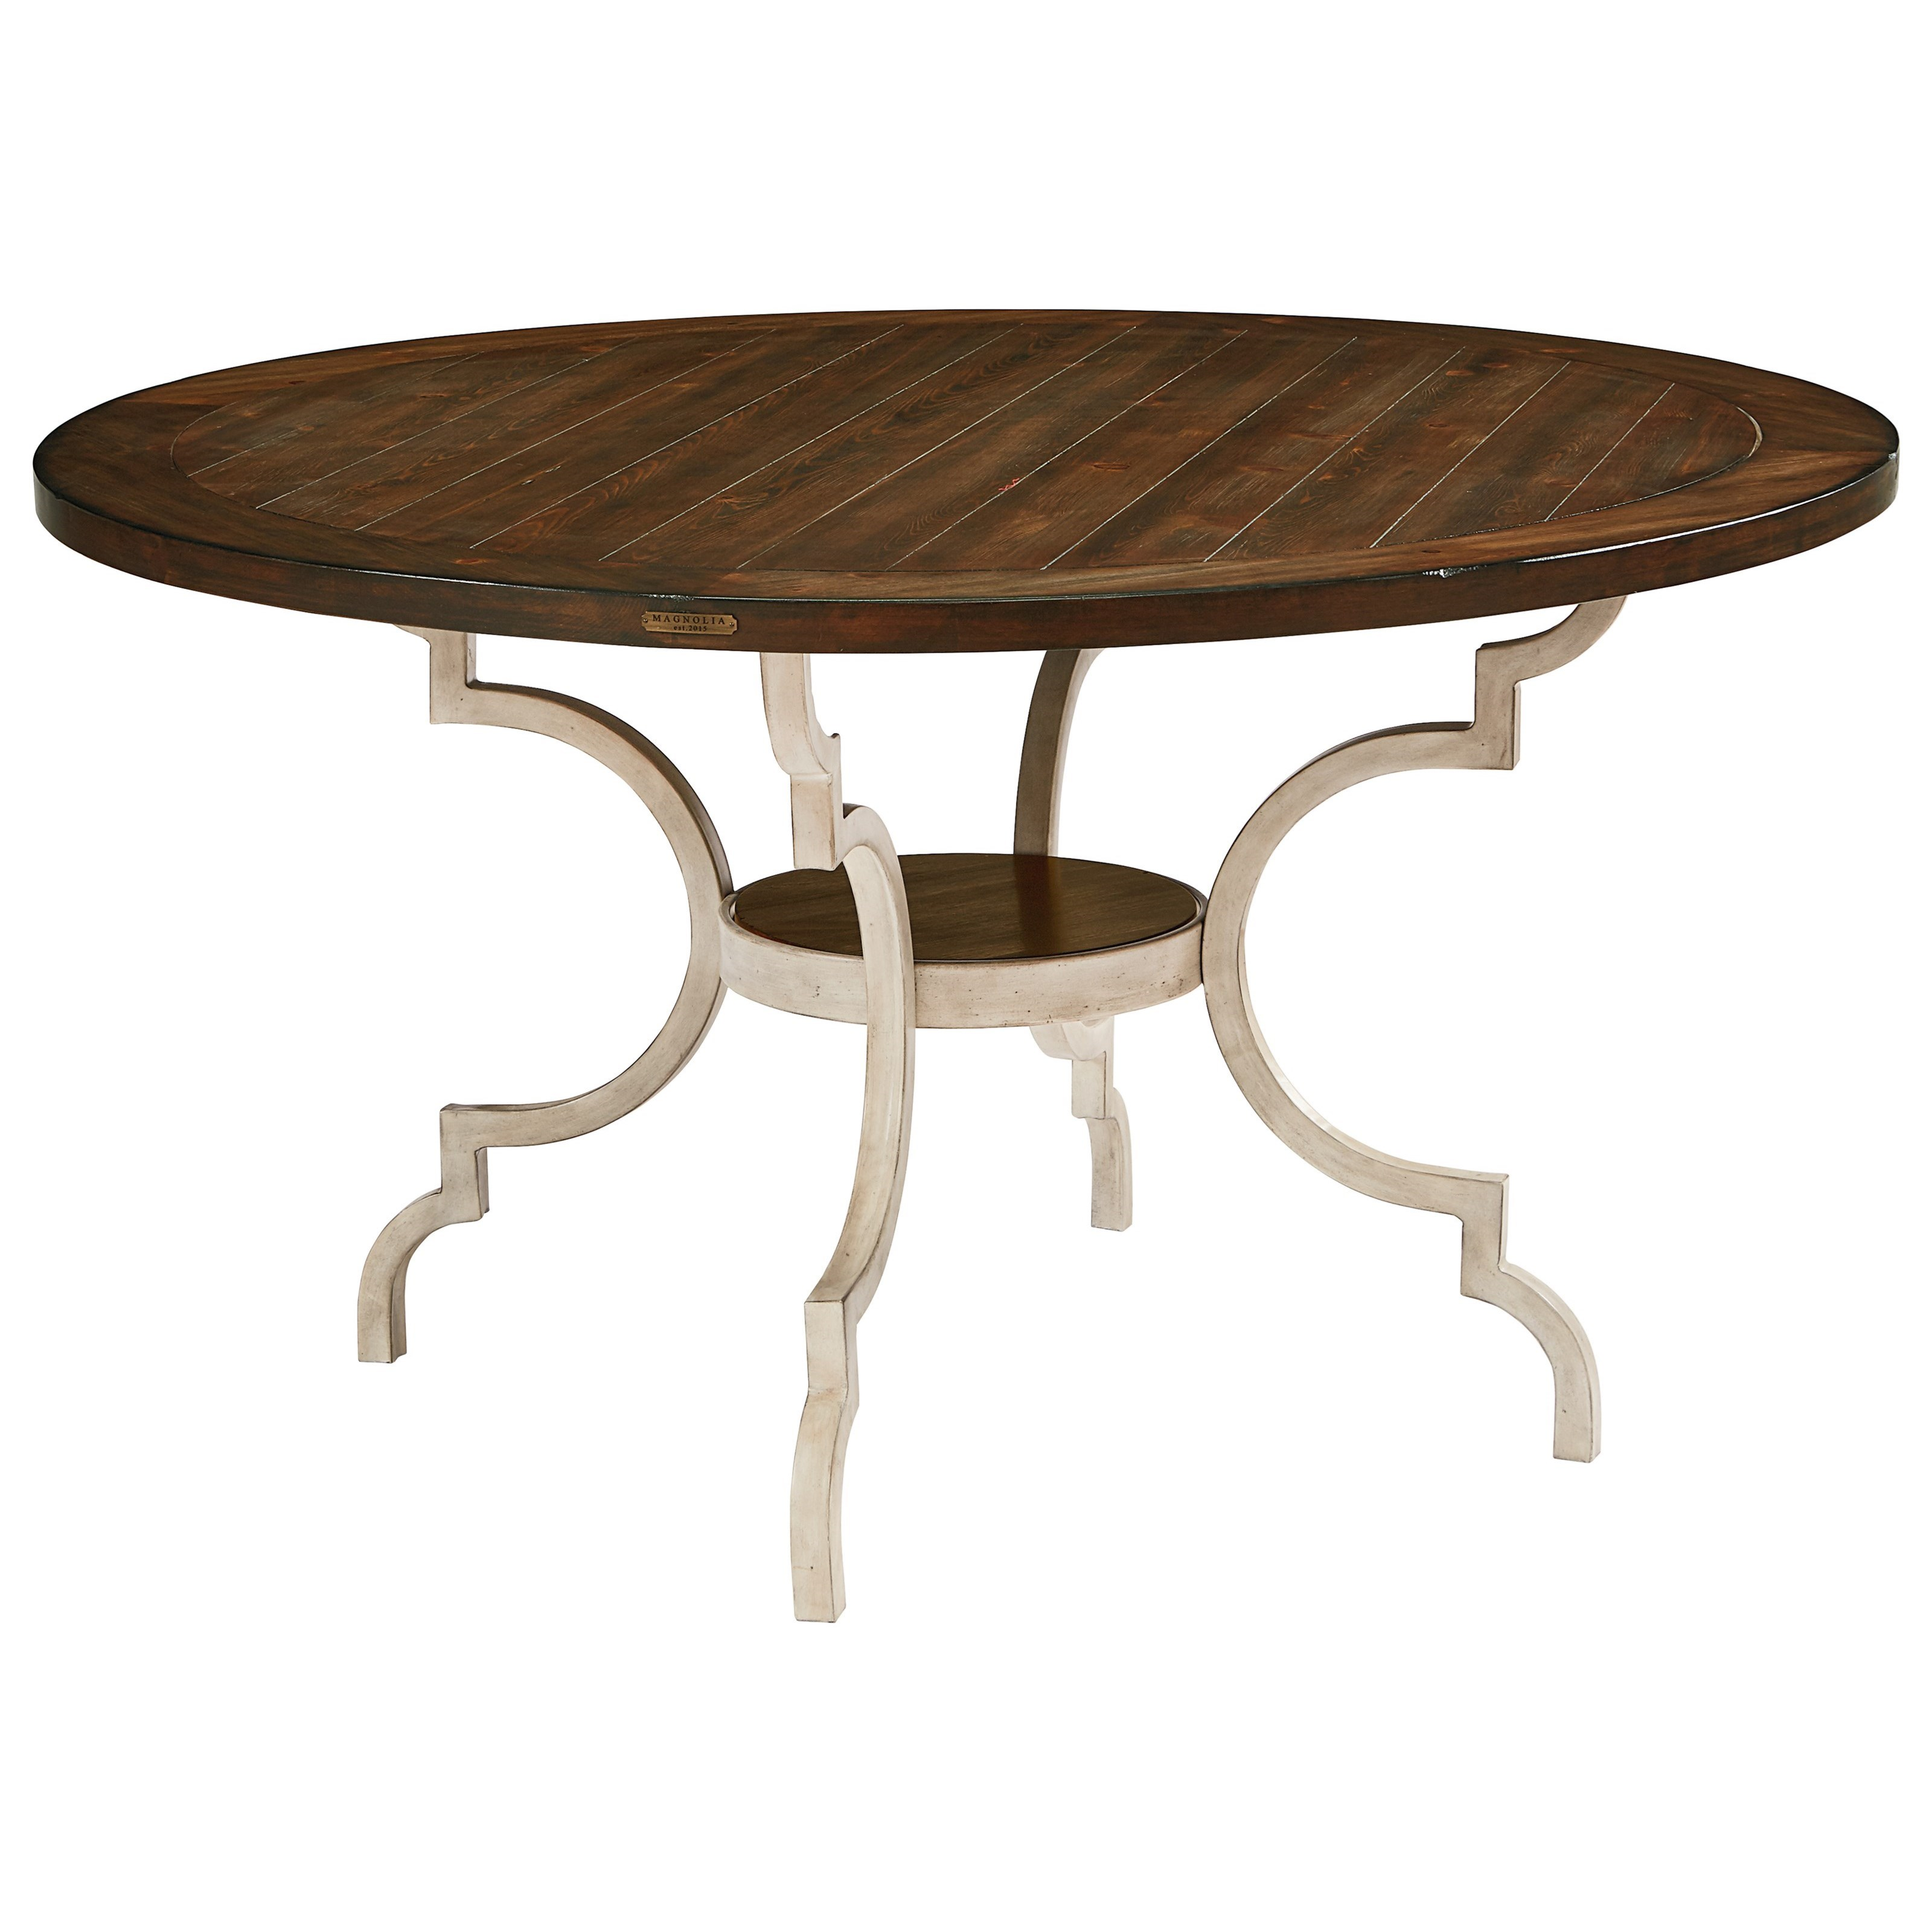 Breakfast table wood top w metal base by magnolia home for Wood and metal kitchen table